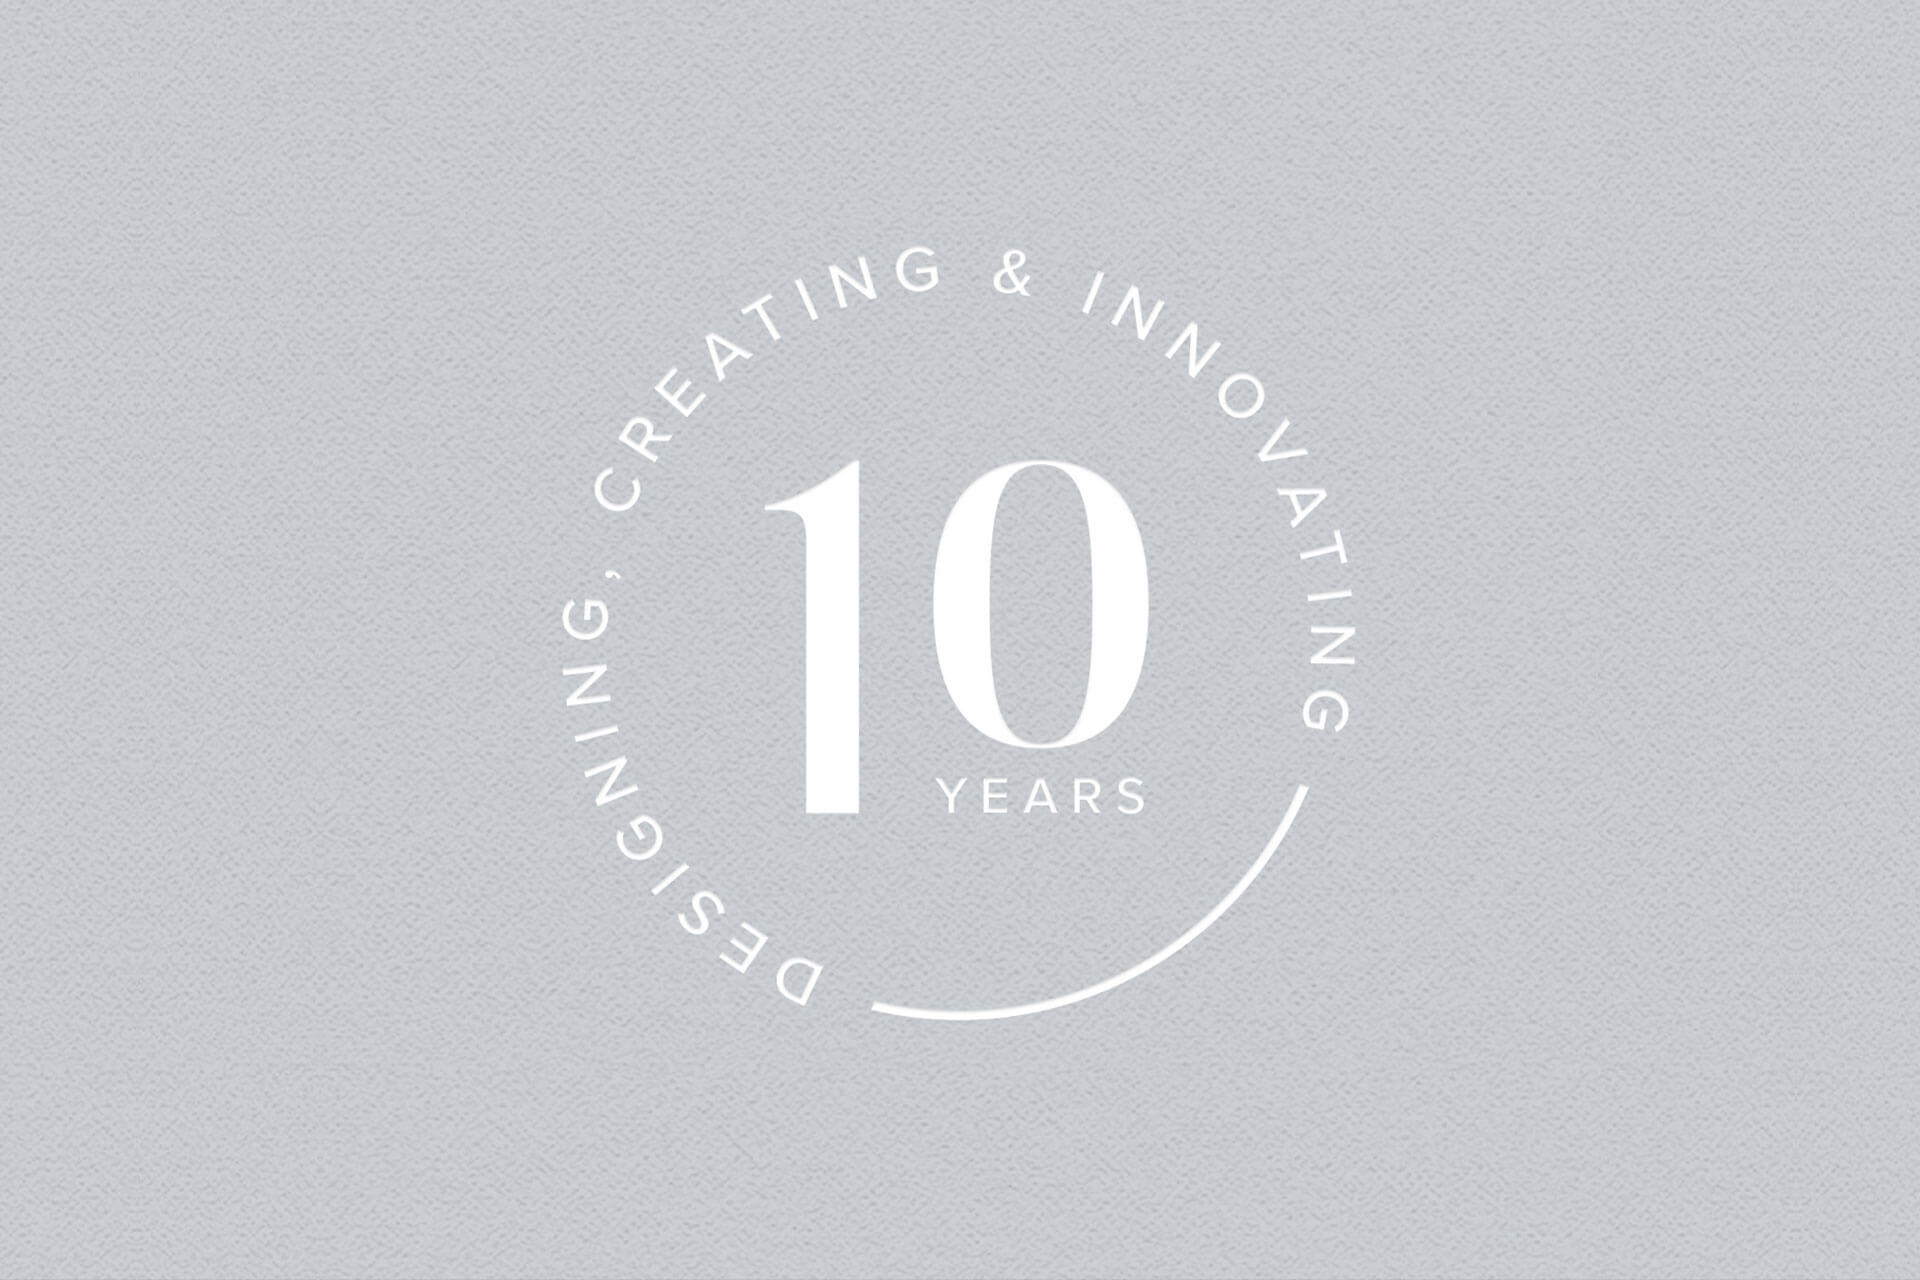 Identity Creative Designing Creating and Innovating